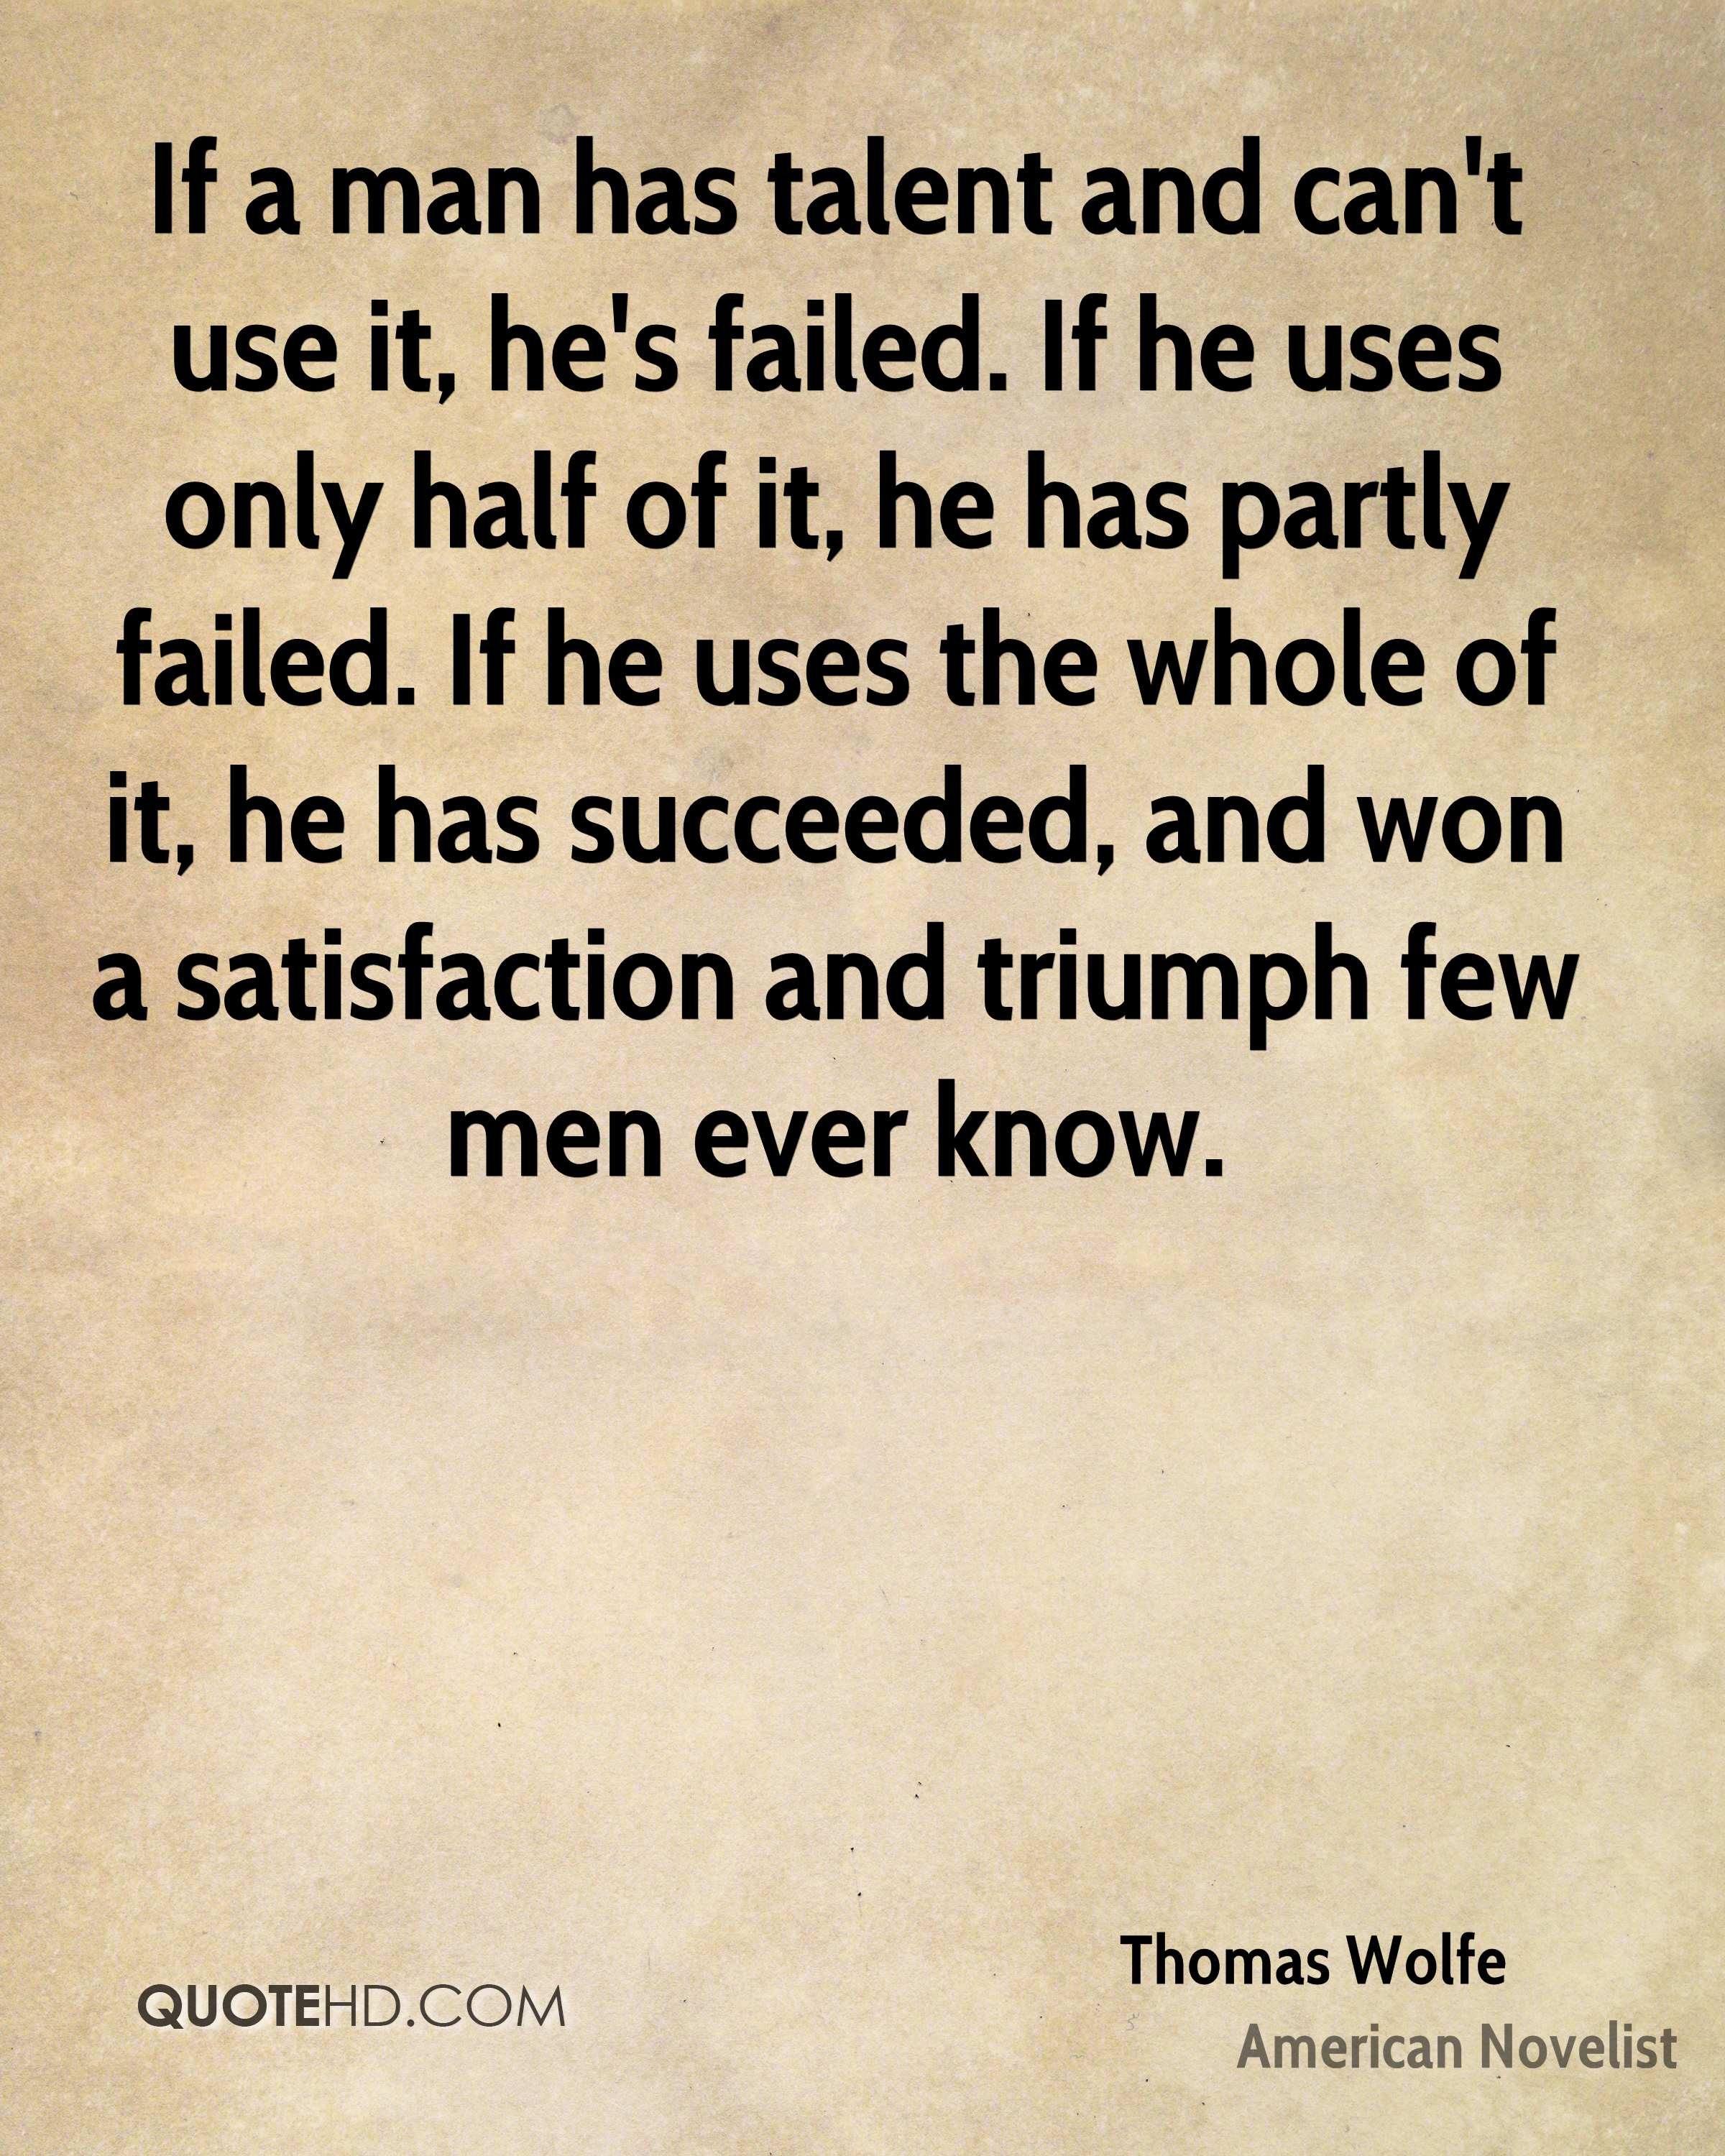 If a man has talent and can't use it, he's failed. If he uses only half of it, he has partly failed. If he uses the whole of it, he has succeeded, and won a satisfaction and triumph few men ever know.